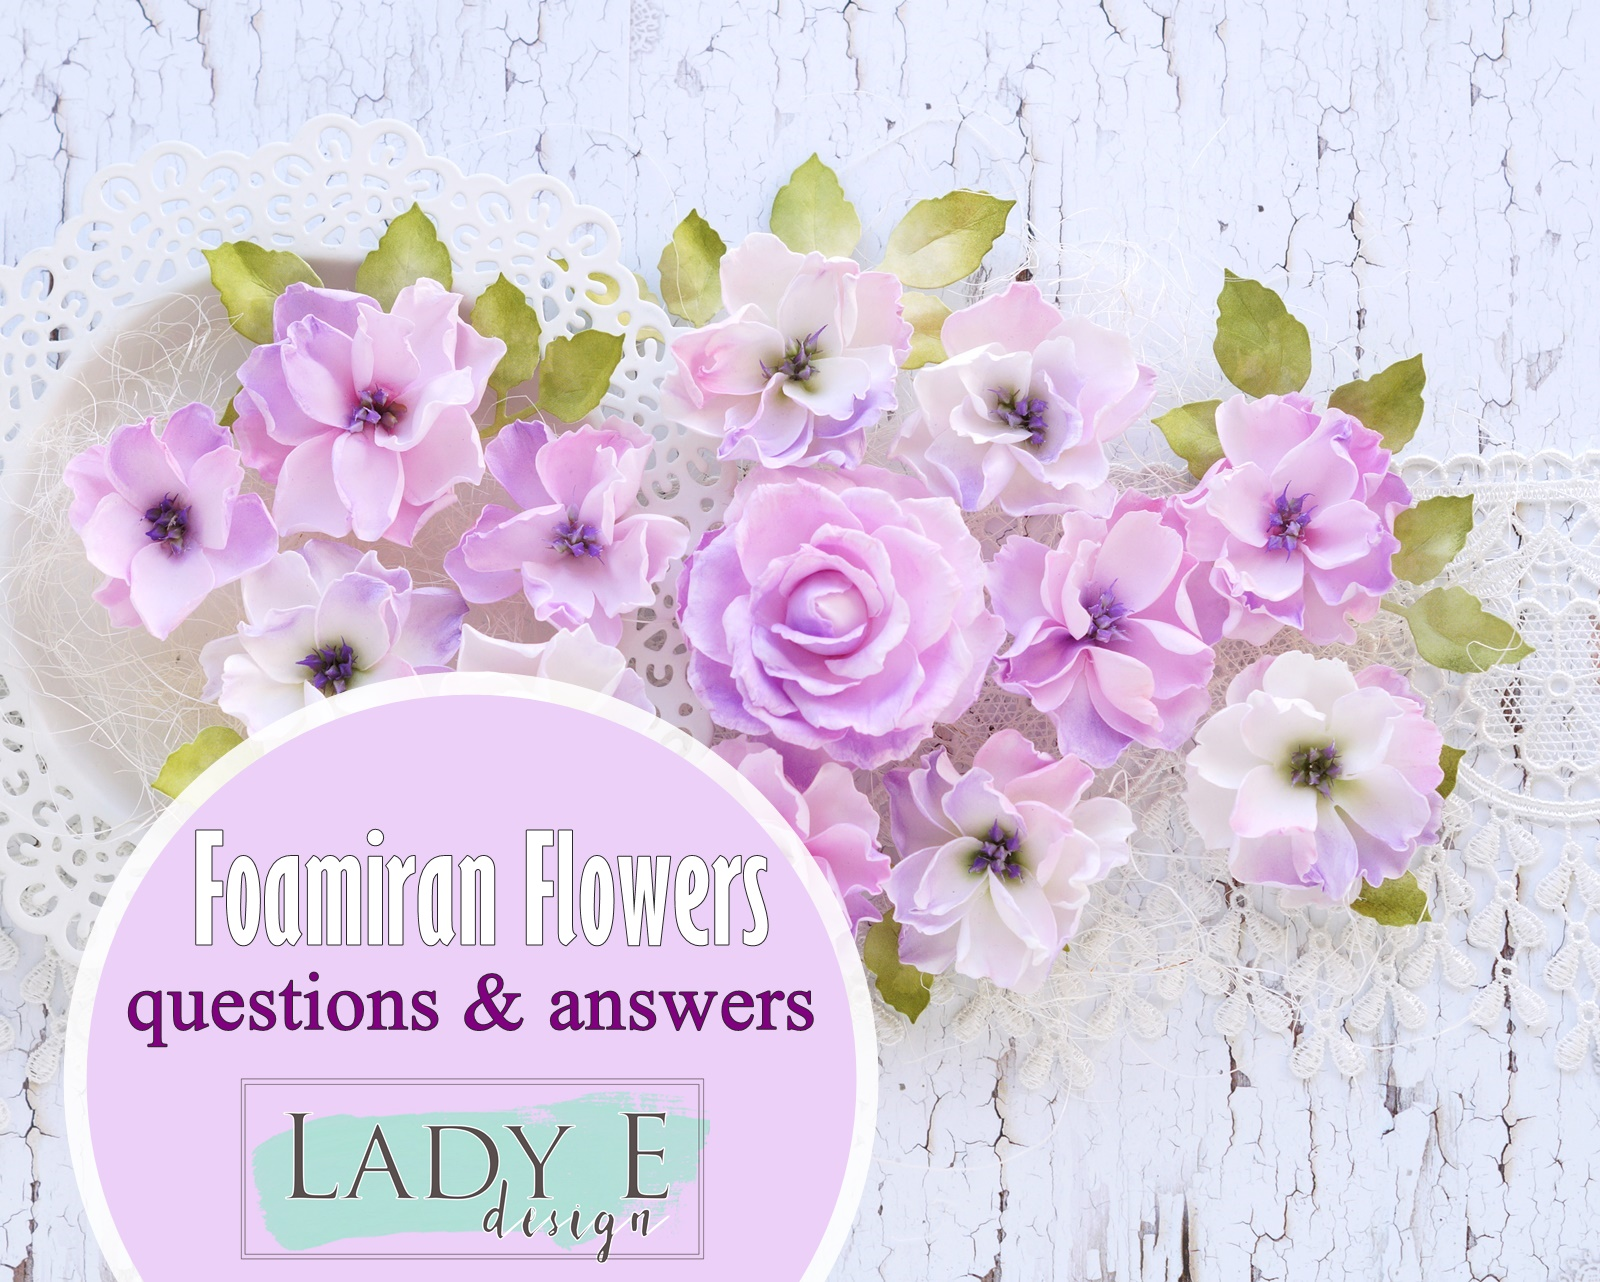 Foamiran Flowers Questions & Answers